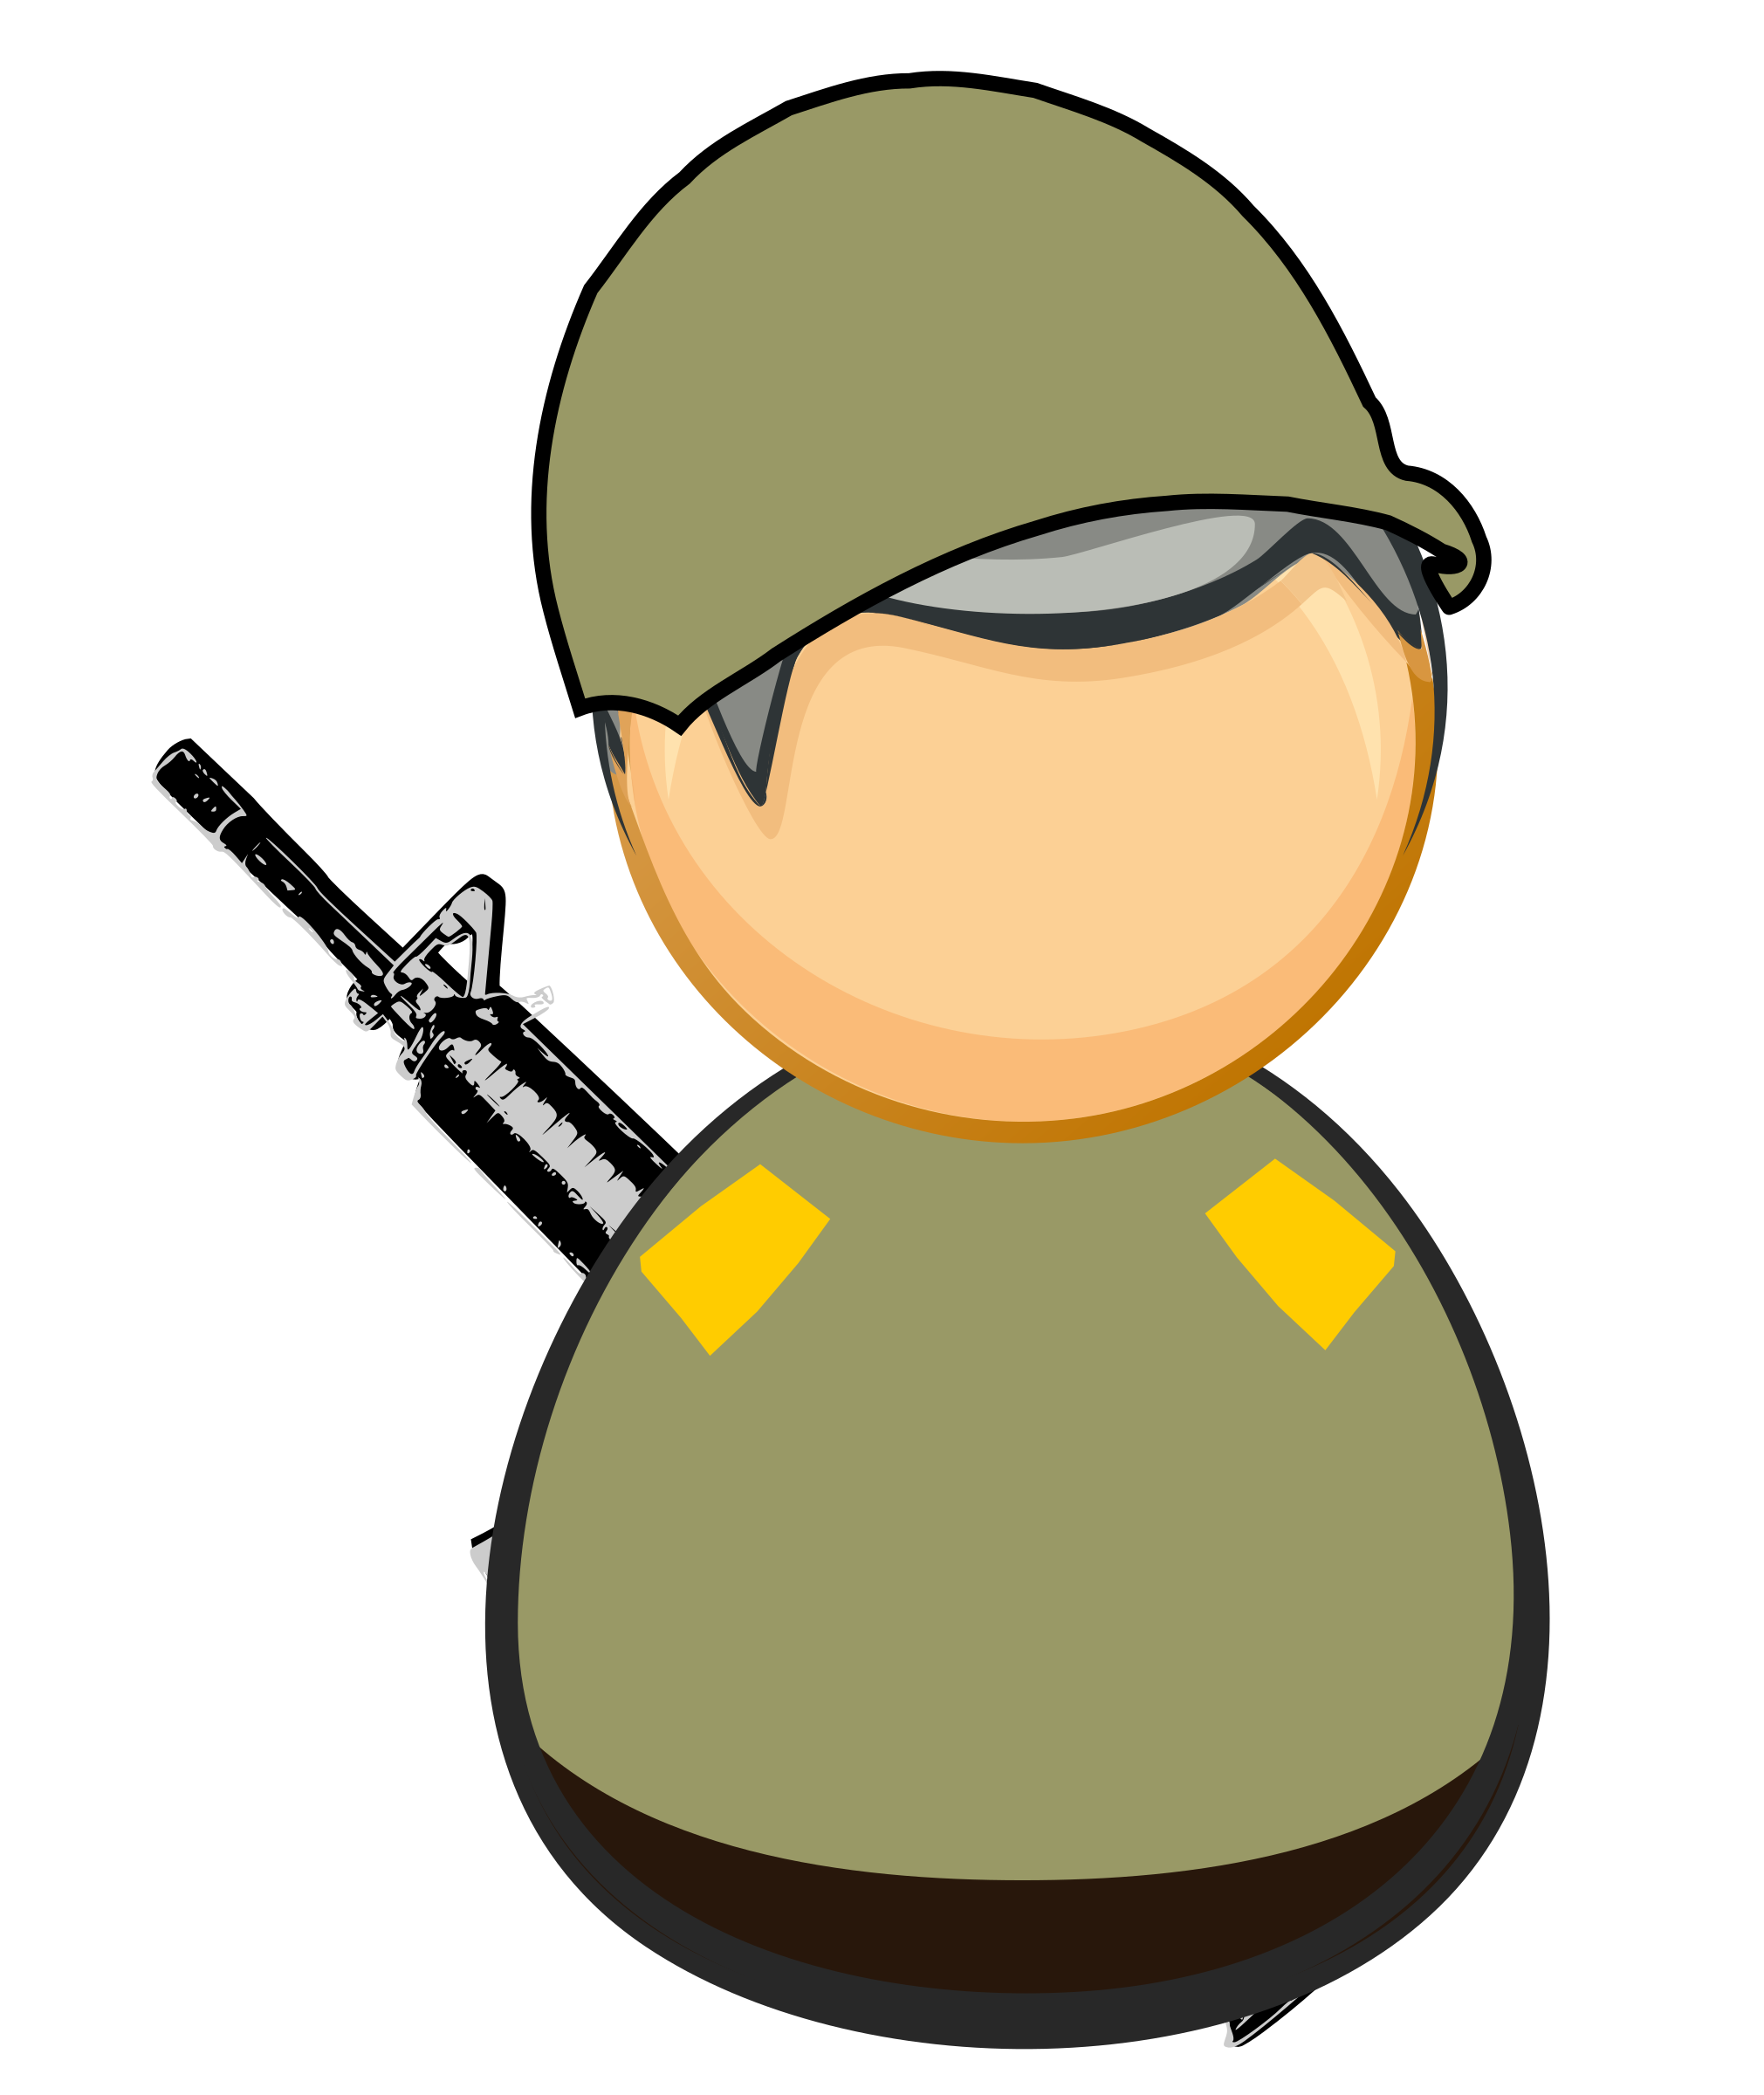 First responder icon - army / soldier by Juhele